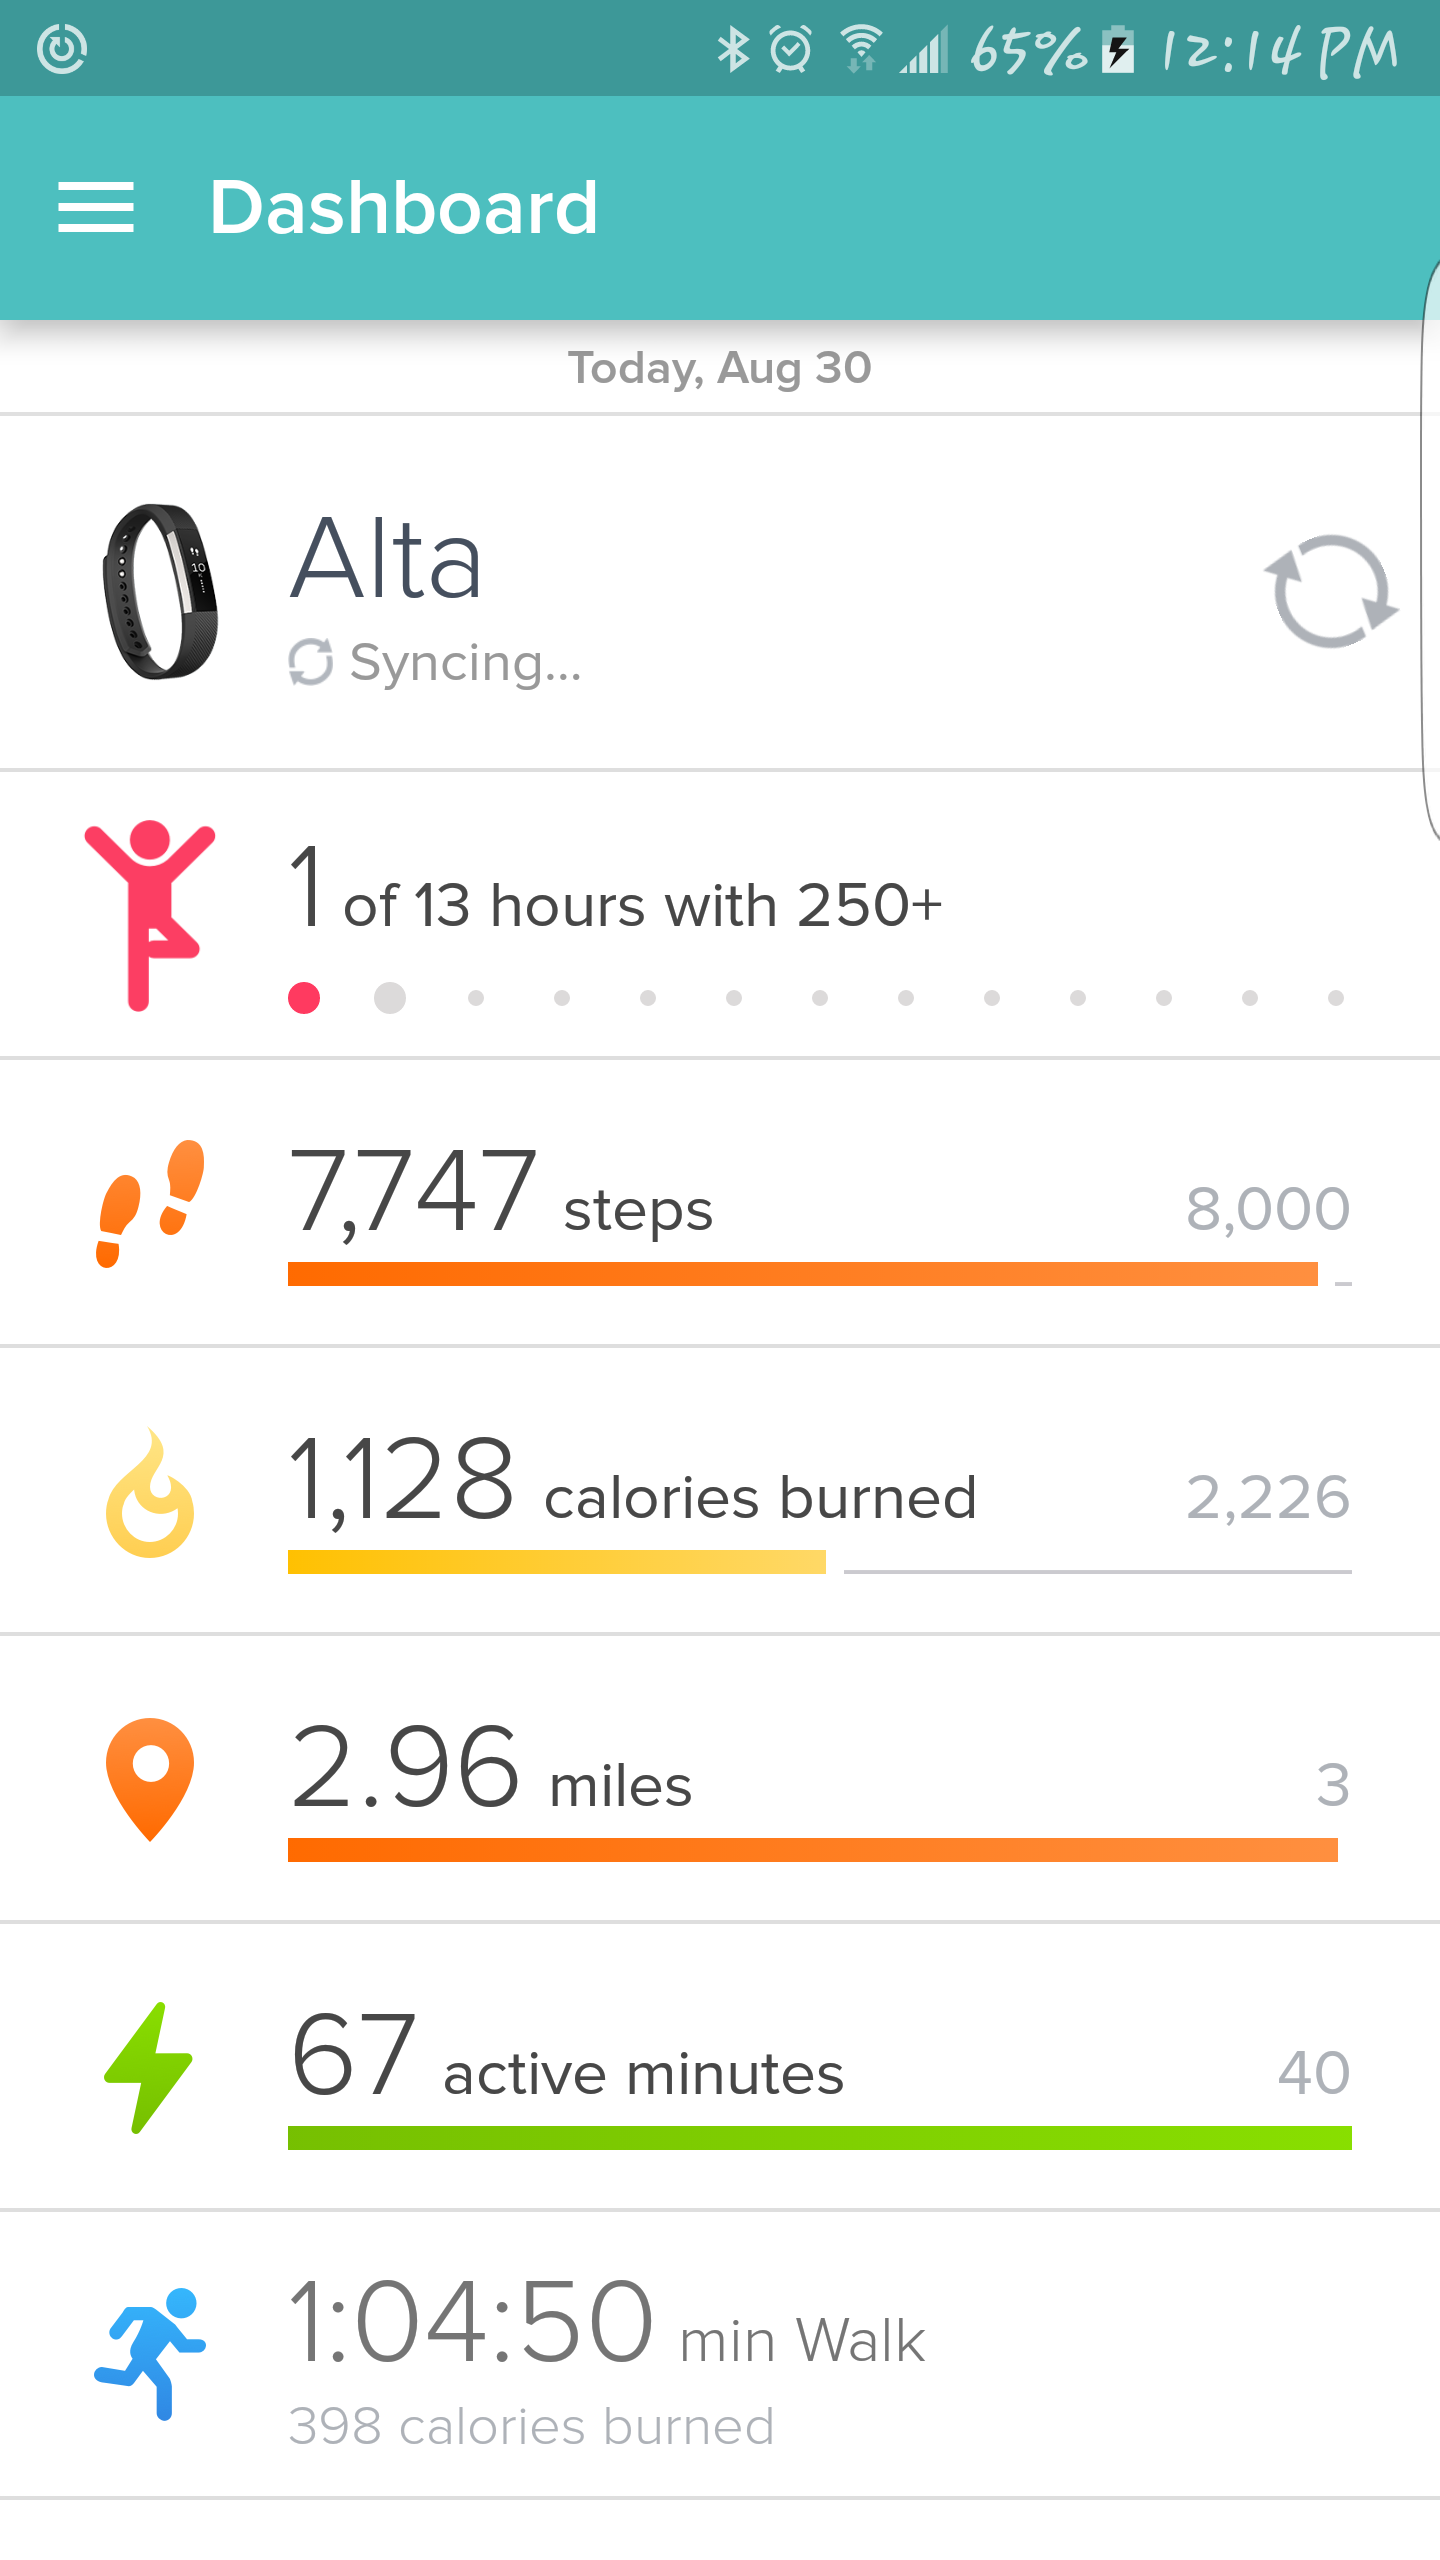 App that syncs Fitbit and Samsung S Health - Fitbit Community